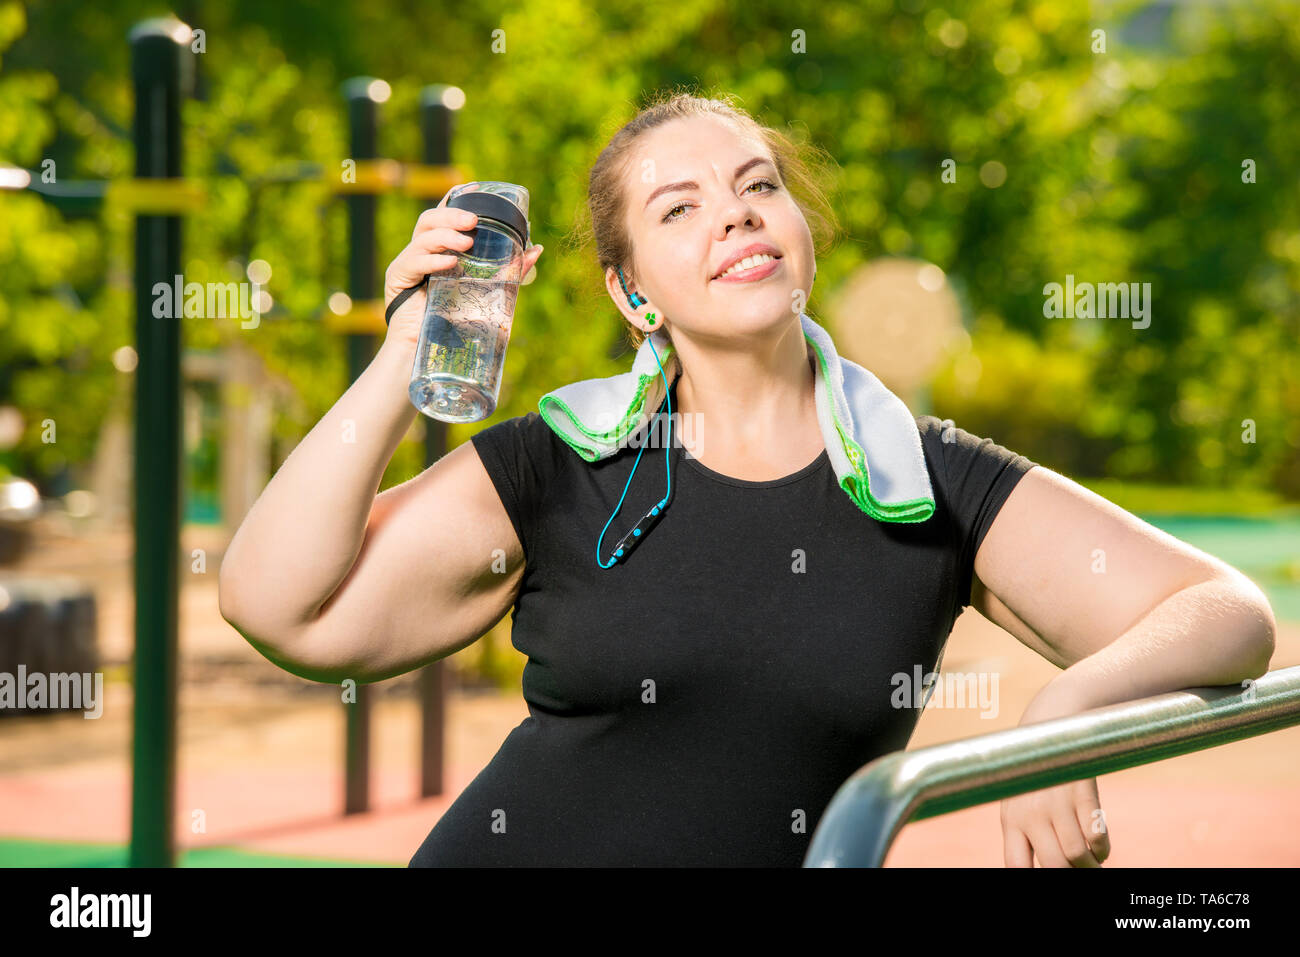 rest after training, portrait of a large woman with a bottle of water next to the simulator in the park - Stock Image